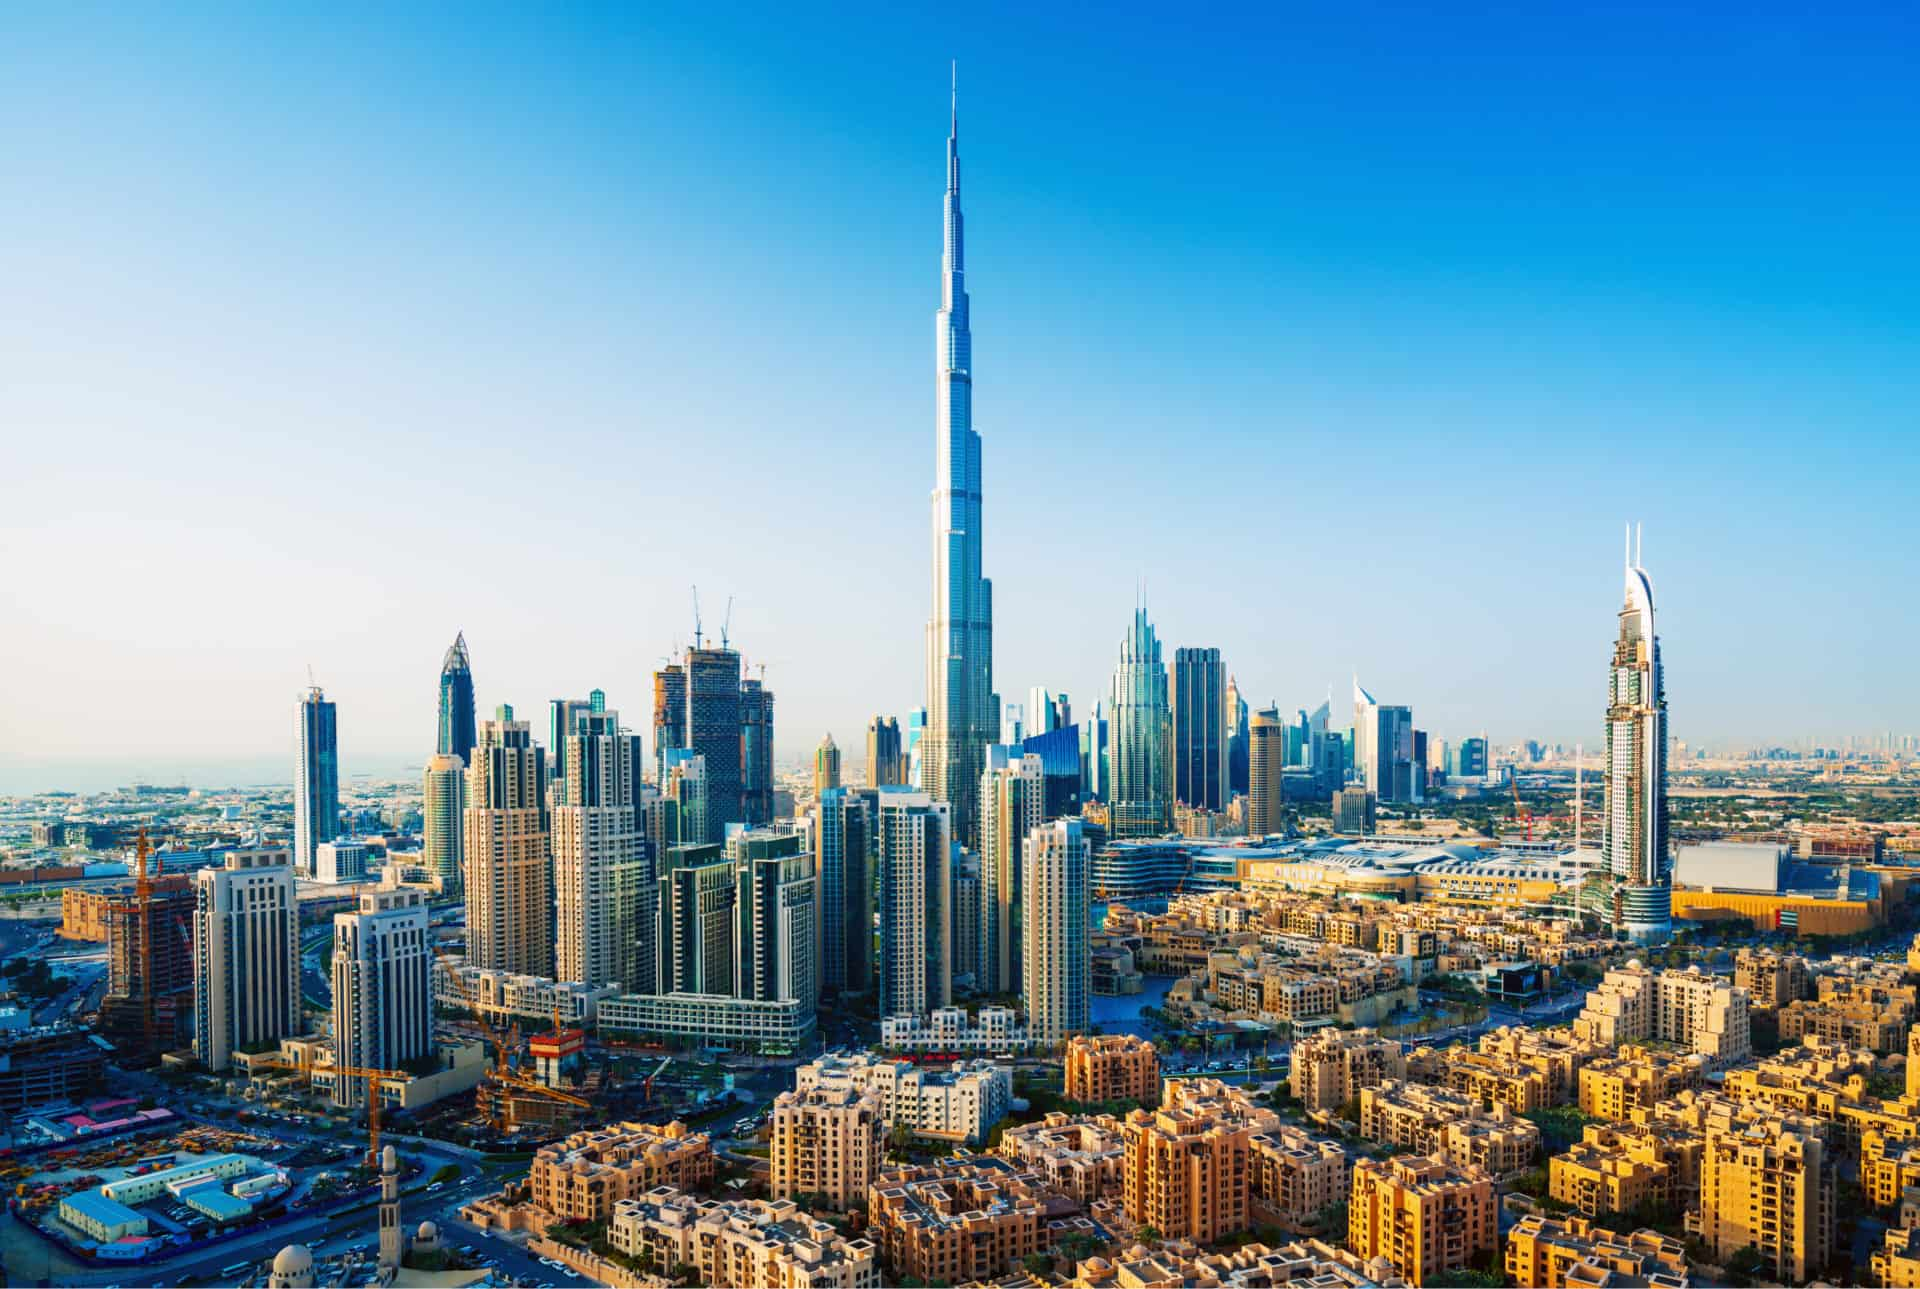 UAE looks to new reforms to boost economy and global image